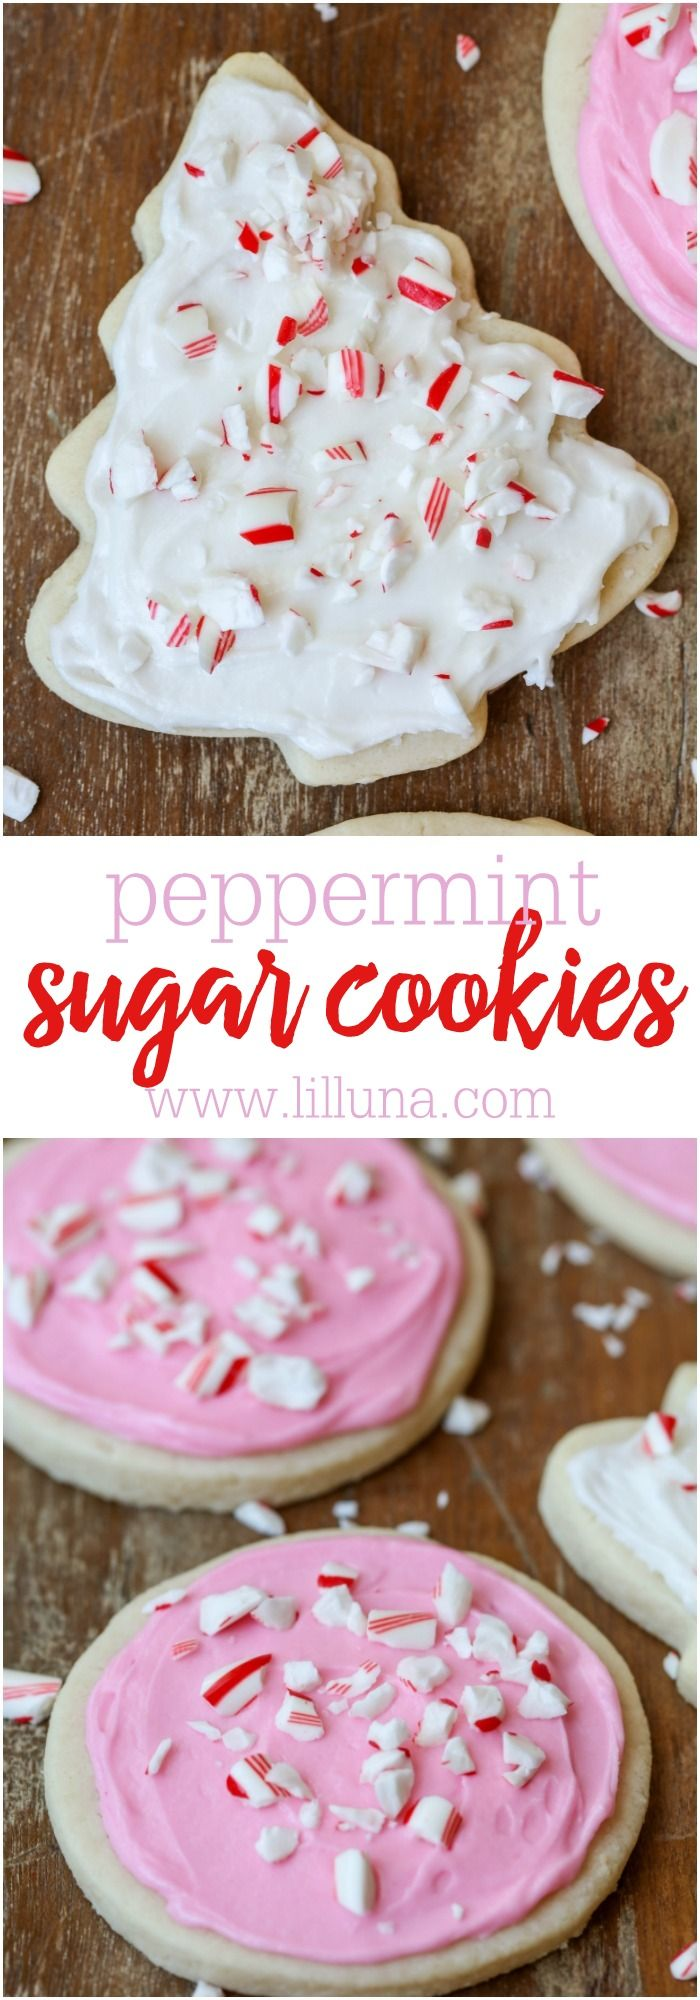 Peppermint Sugar Cookies - the softest sugar cookie with hints of peppermint and topped with a creamy peppermint frosting and candy cane pieces.